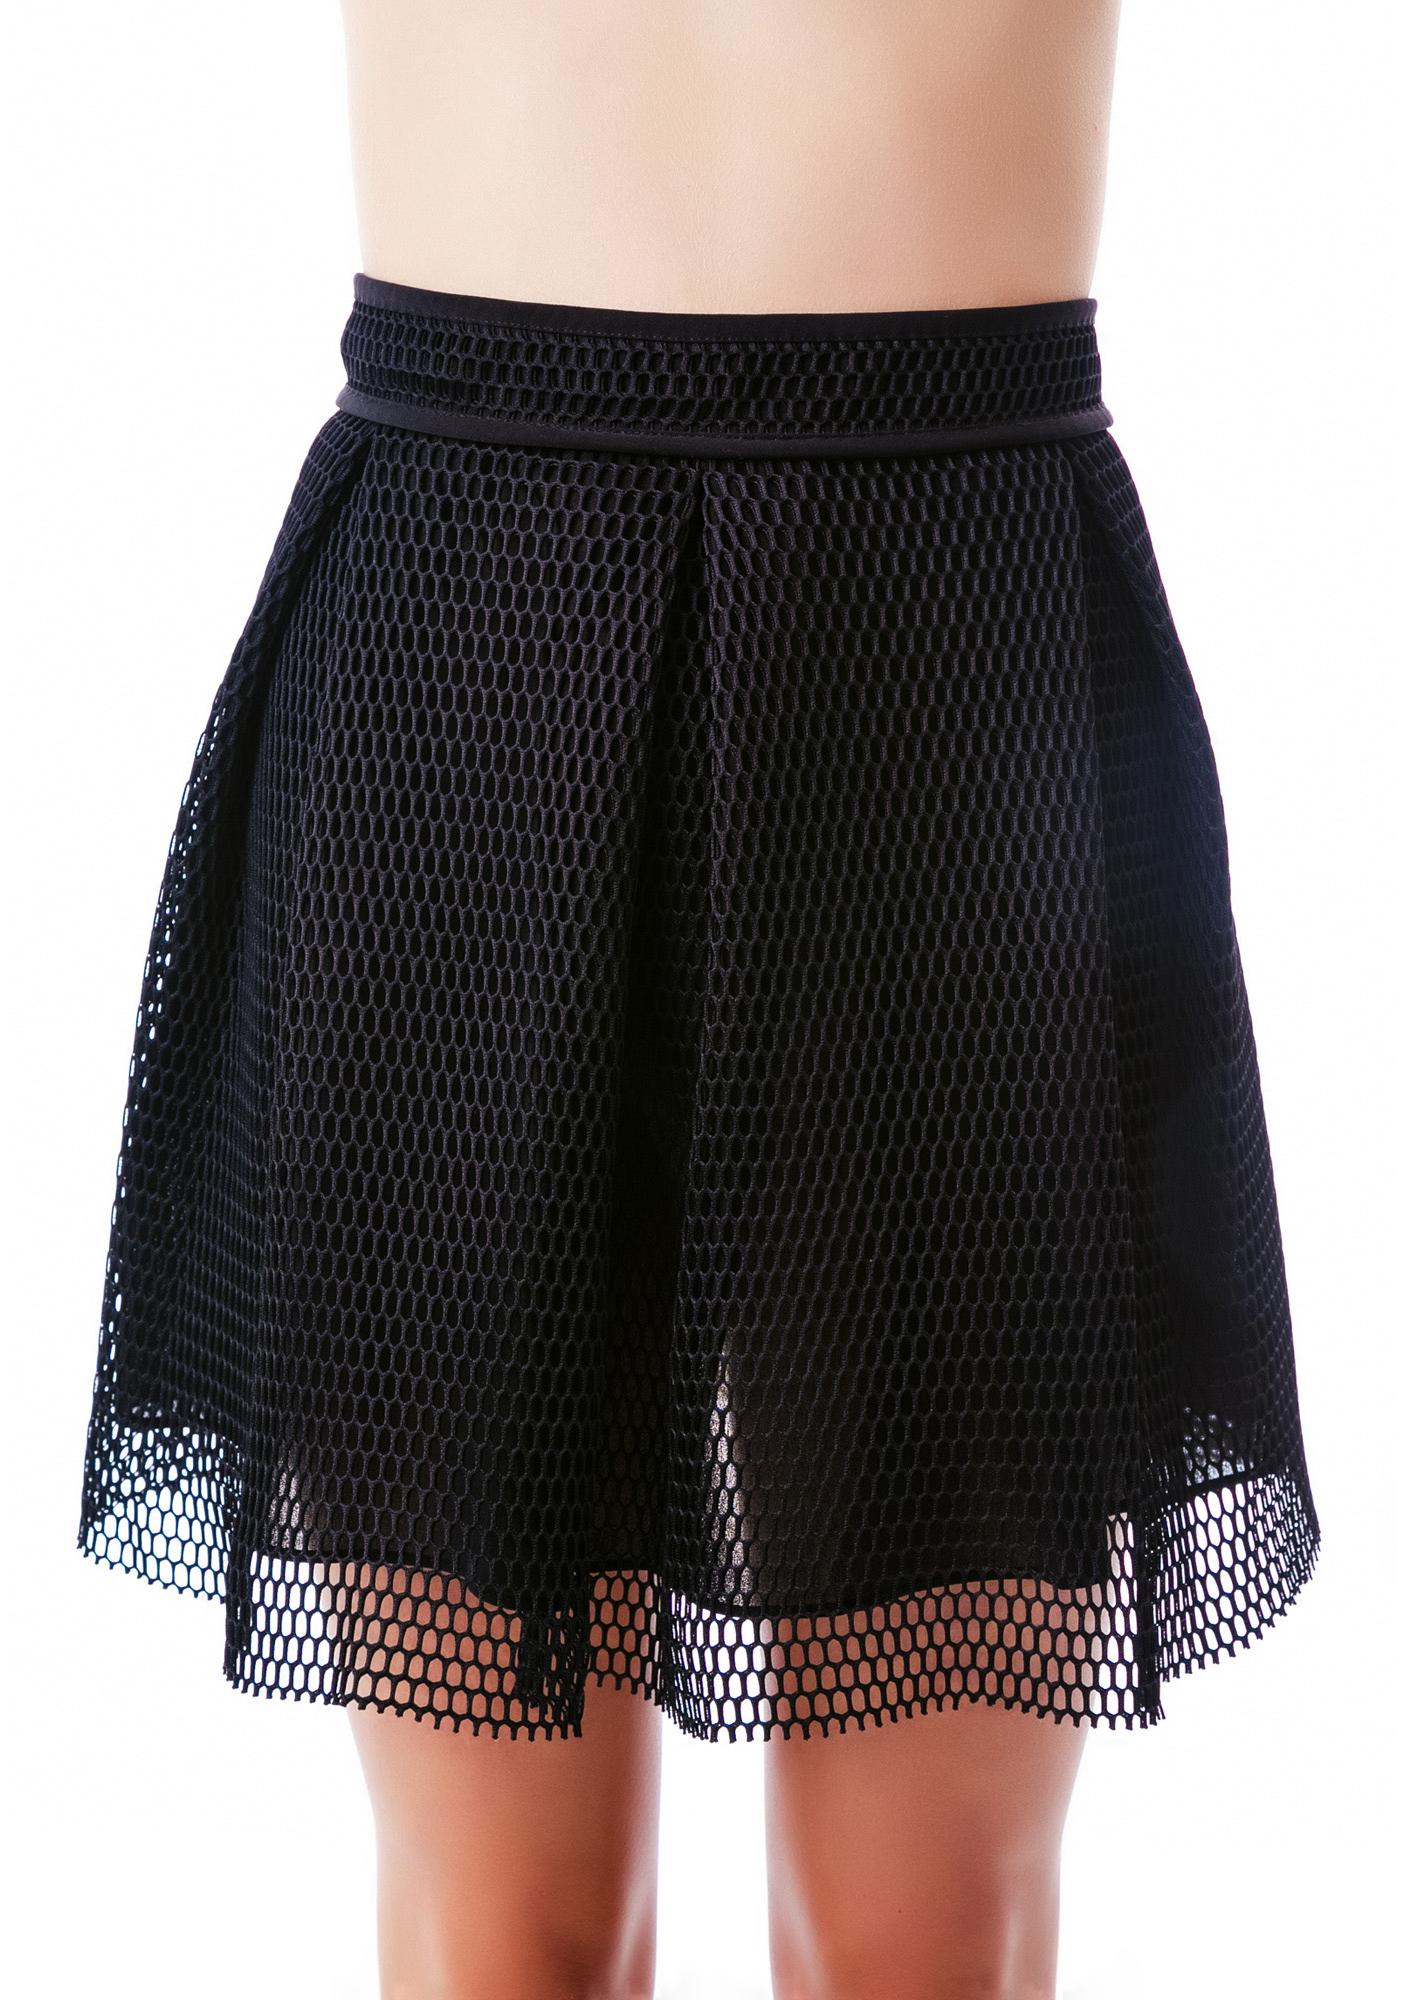 Hole New View Pleated Net Skirt